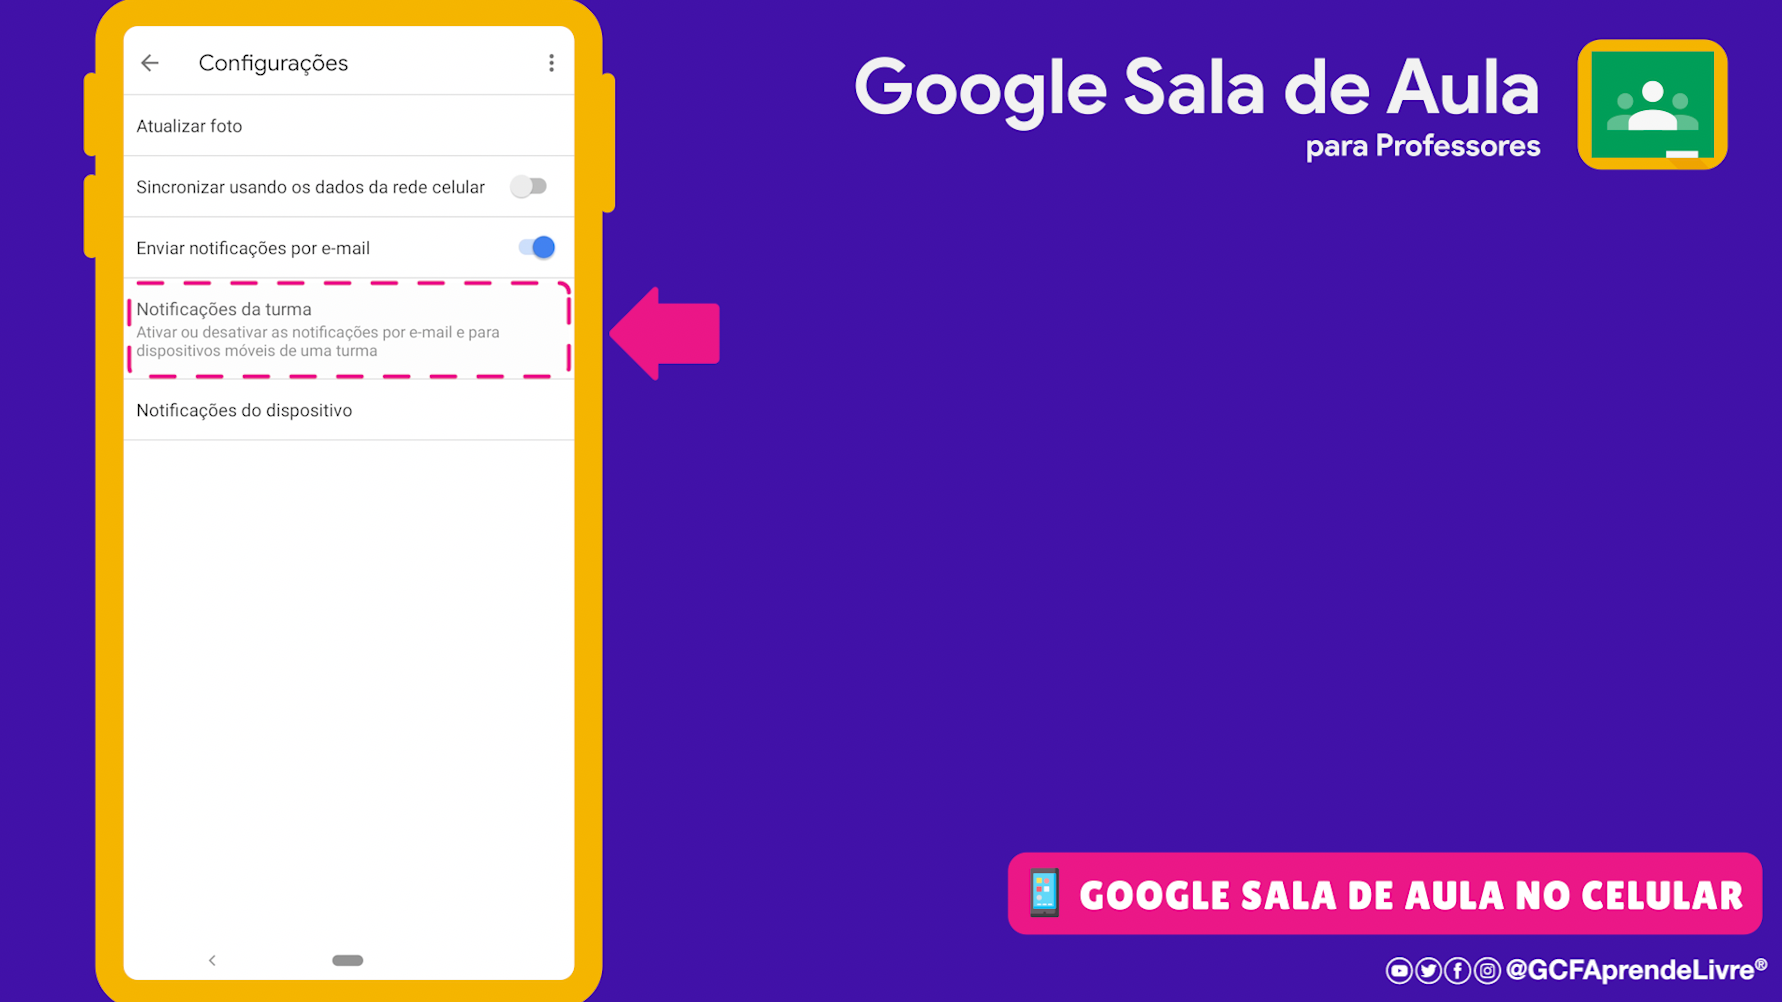 como ativar ou desativar as notificações do Google Sala de Aula 1